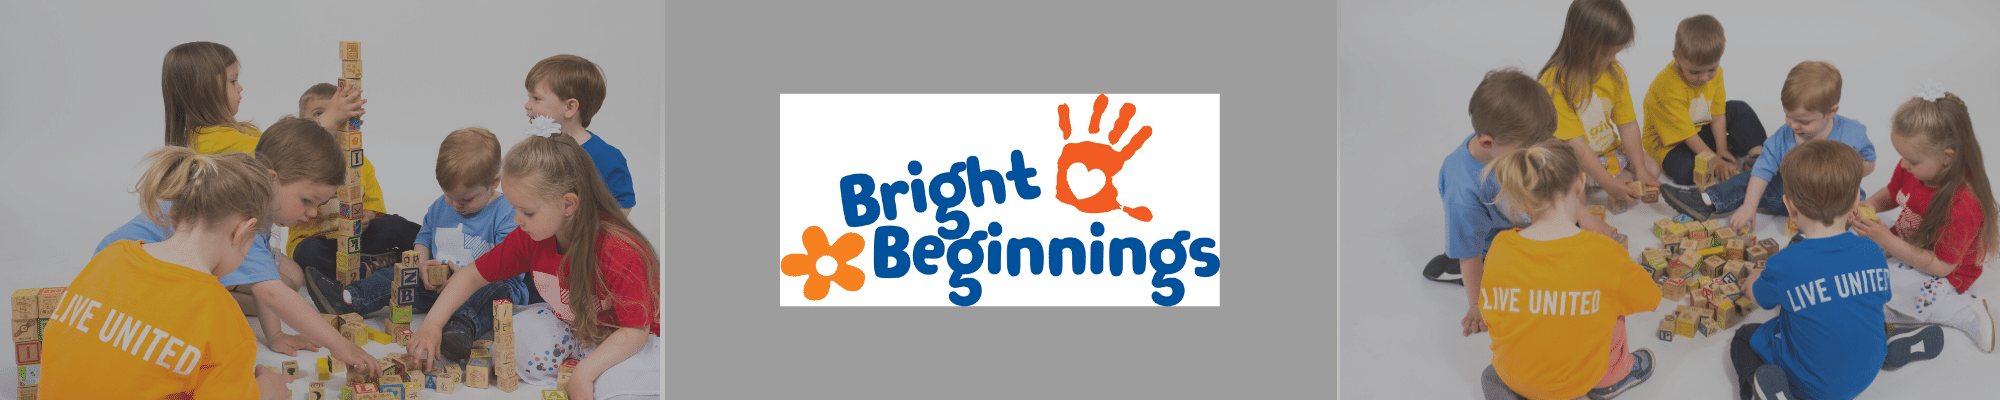 bright beginnings logo